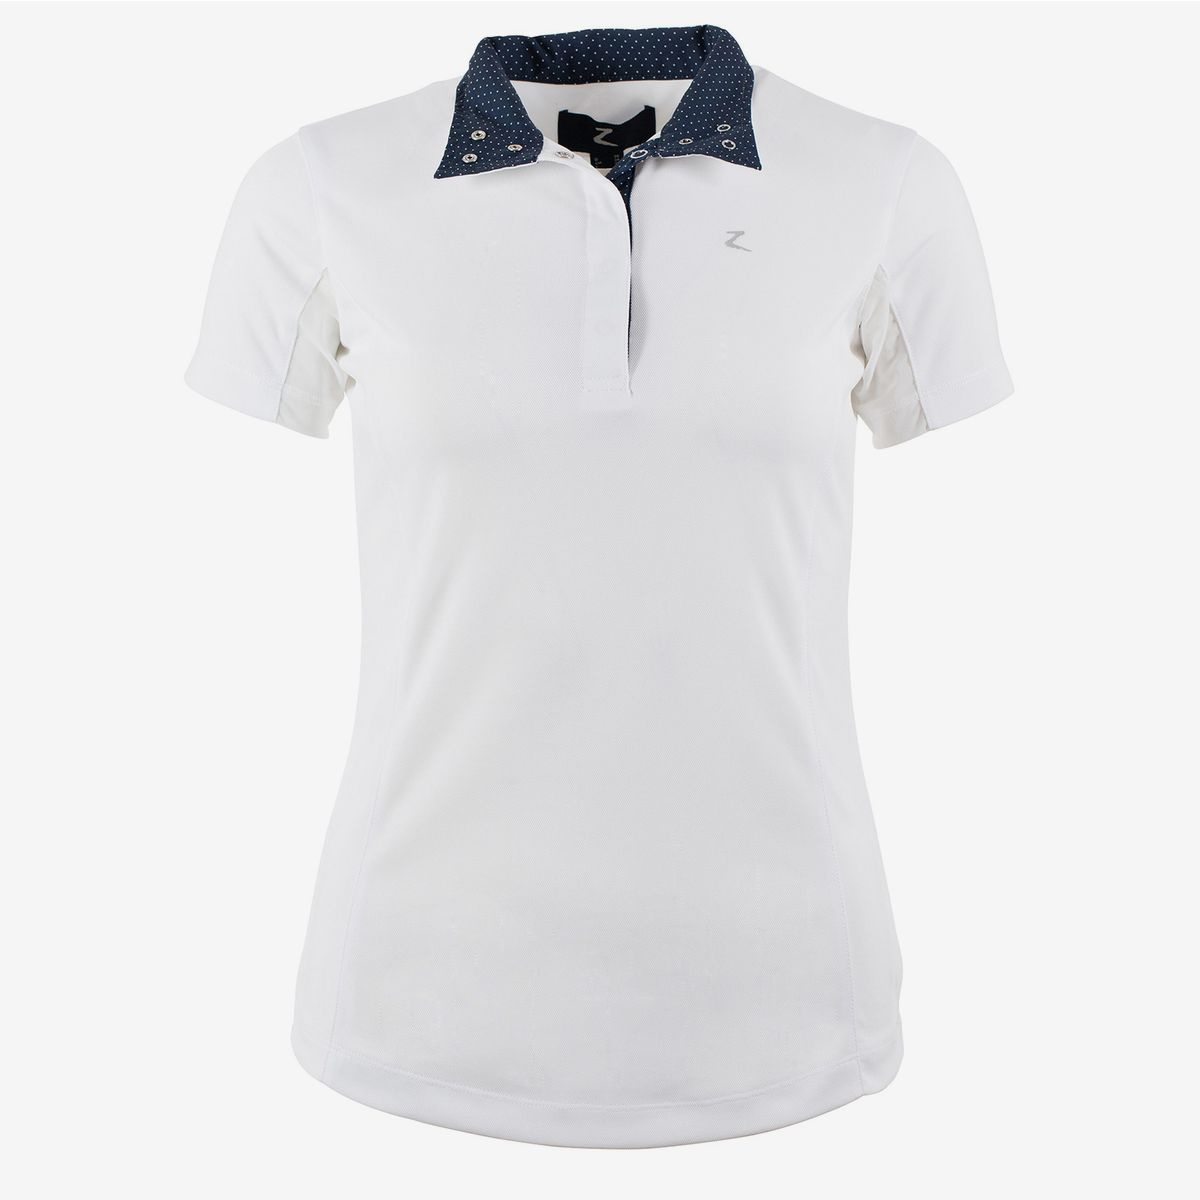 Horze-Blaire-Women-039-s-Short-Sleeve-Functional-Show-Shirt-with-UV-Protection thumbnail 44